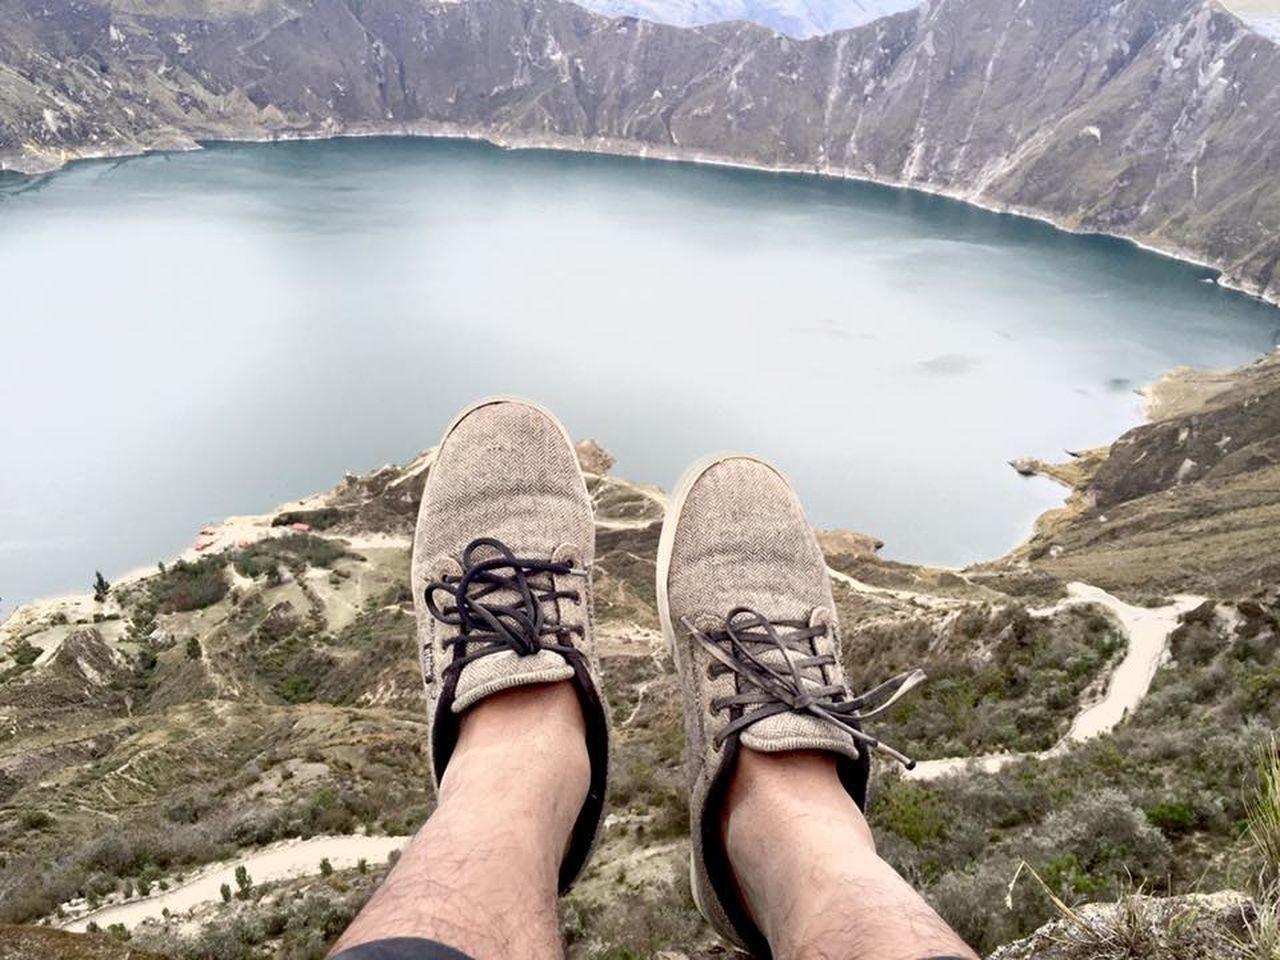 mountain, shoe, low section, human leg, one person, rock - object, personal perspective, hiking, nature, adventure, day, scenics, outdoors, cliff, real people, mountain peak, human body part, lake, mountain range, men, leisure activity, lifestyles, water, landscape, beauty in nature, standing, one man only, climbing, sky, people, only men, adult, adults only